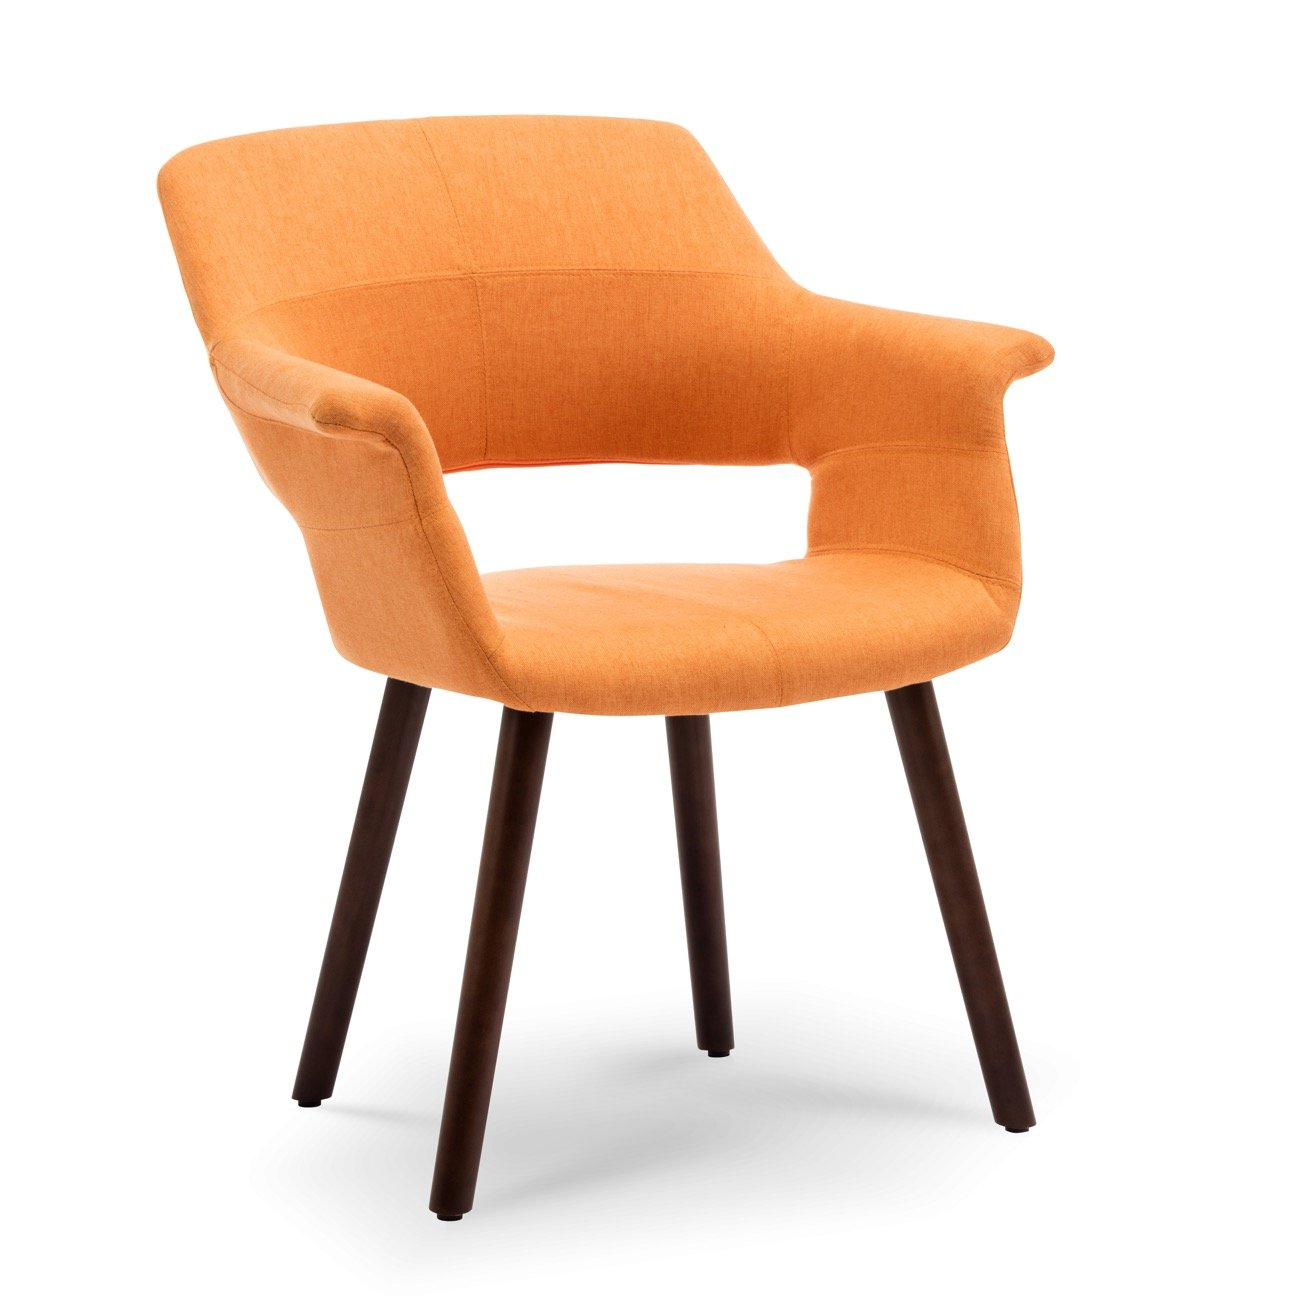 Belleze Mid-Century Modern Accent Chair Living Room Upholstered Linen Dining Armchair with Wood Legs, (Orange)